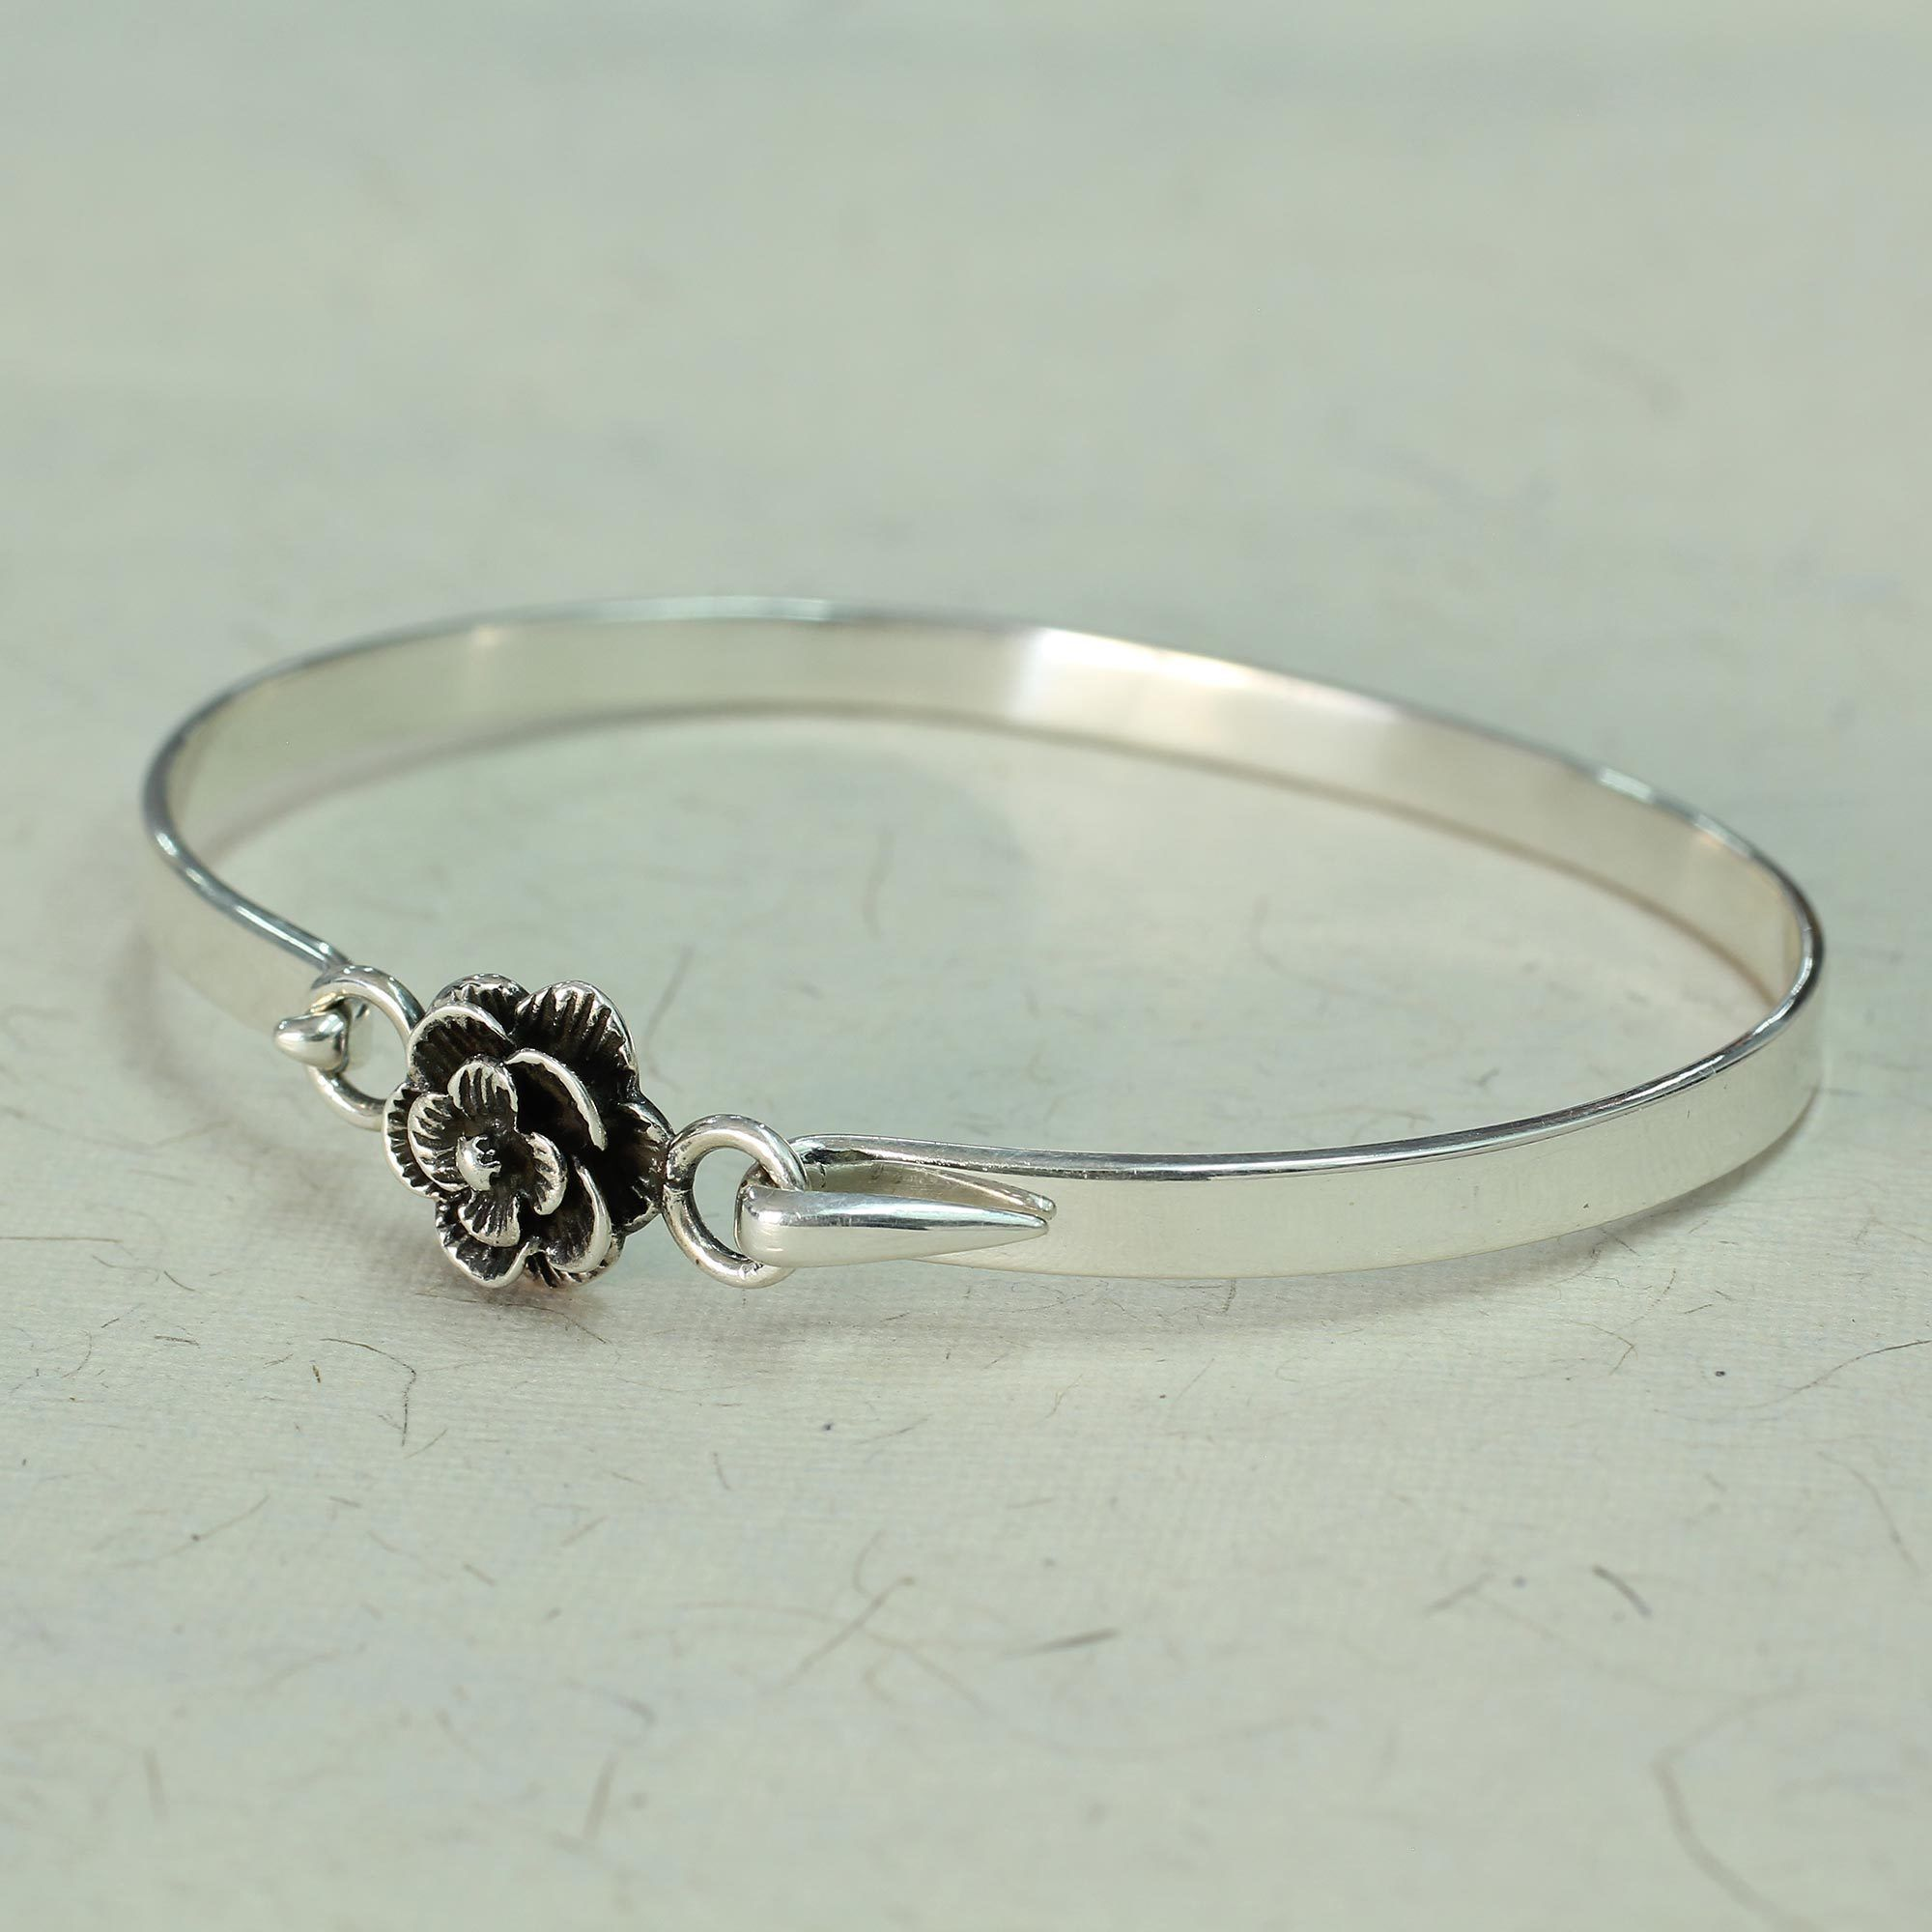 sterling perfect occasion small inside features design bangle for bracelets featuring handcrafted bangles an any pin open a bracelet gold filled this silver heart